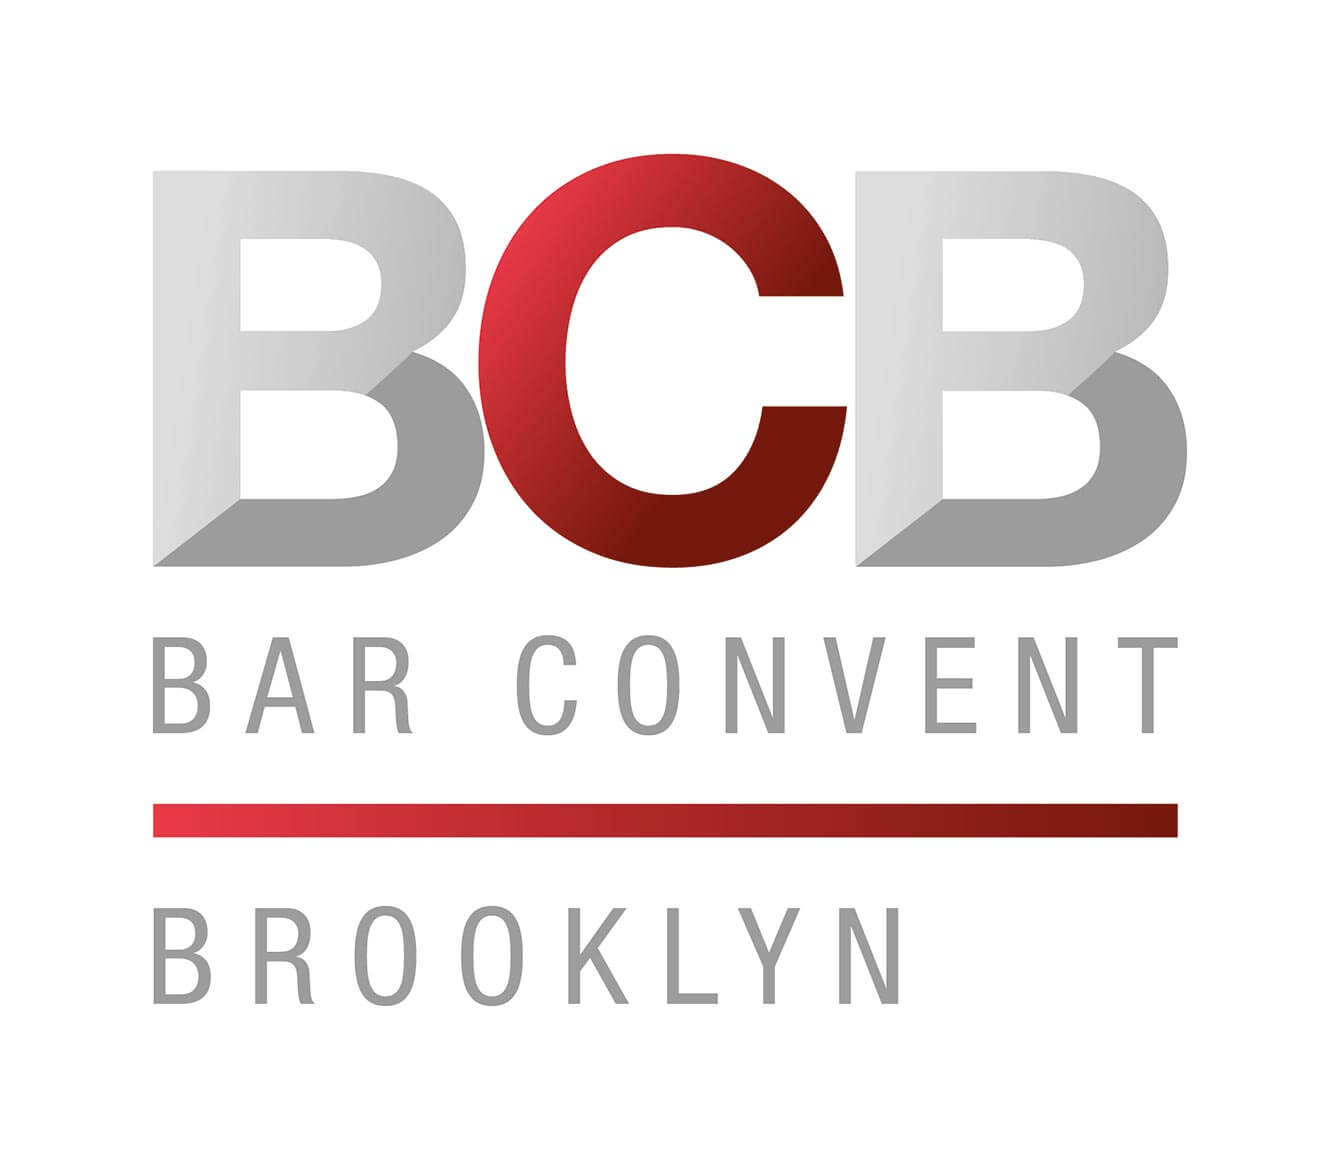 Bar-Convent-Brooklyn, logo on white